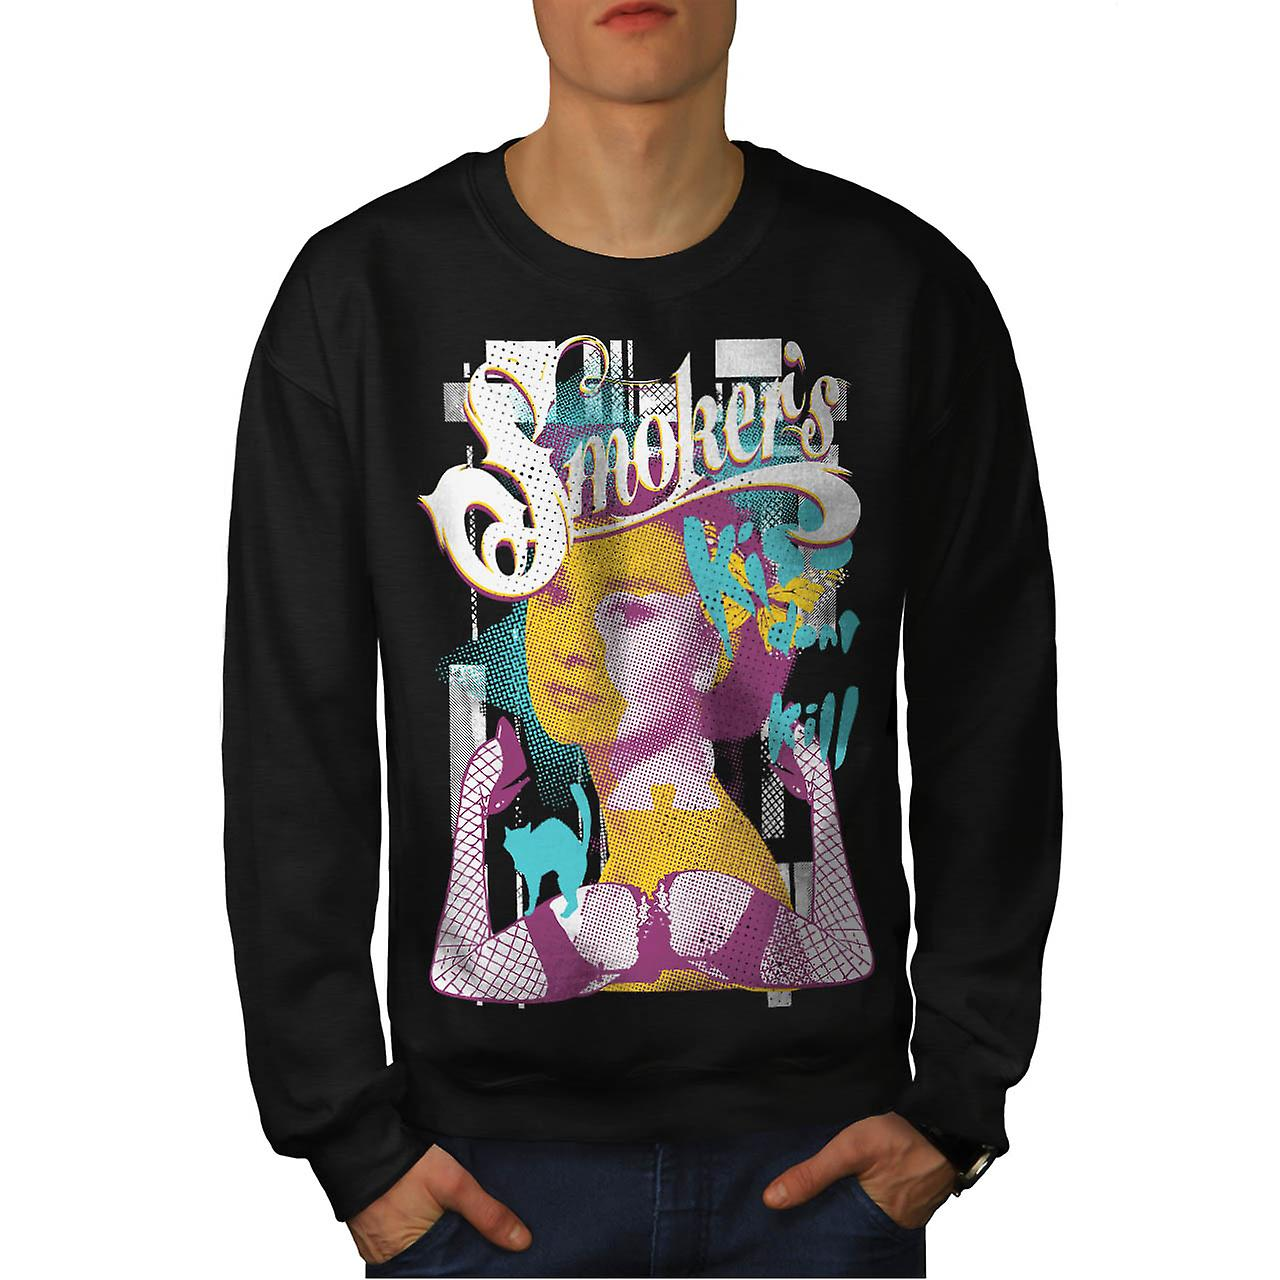 Roker Kiss Dont Kill Audrey Leg mannen zwart Sweatshirt | Wellcoda